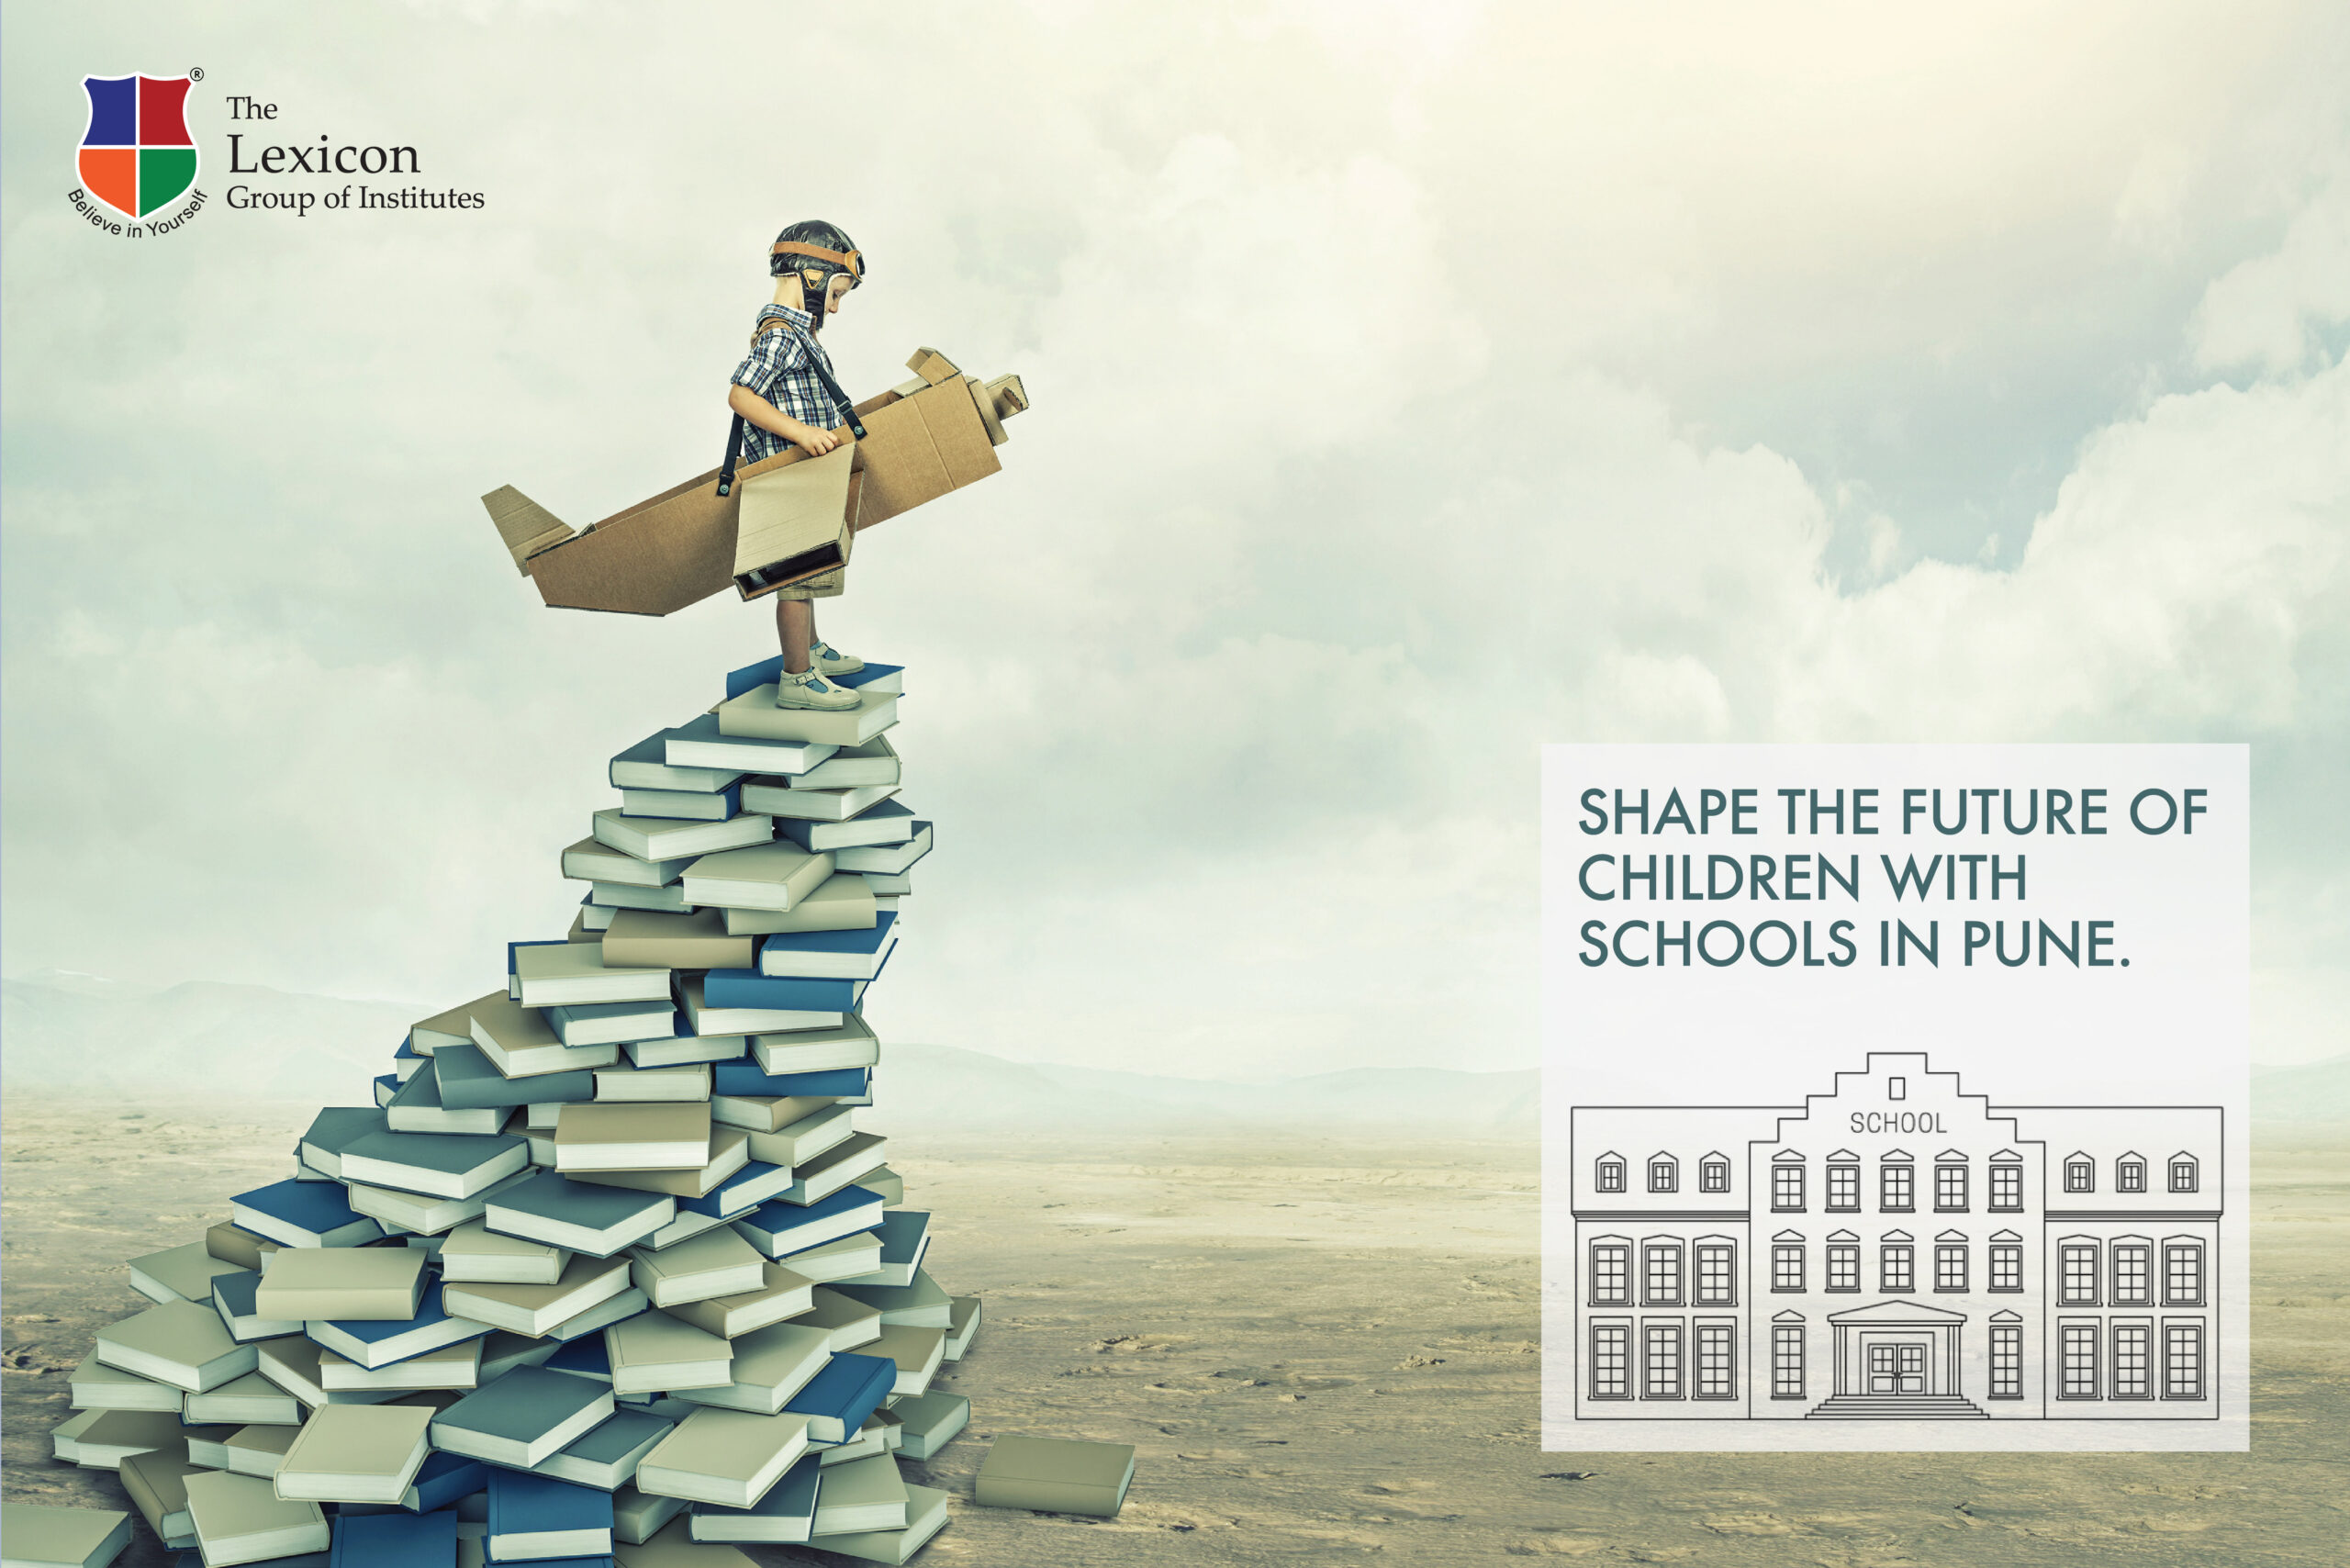 Shape the Future of Children with Schools in Pune